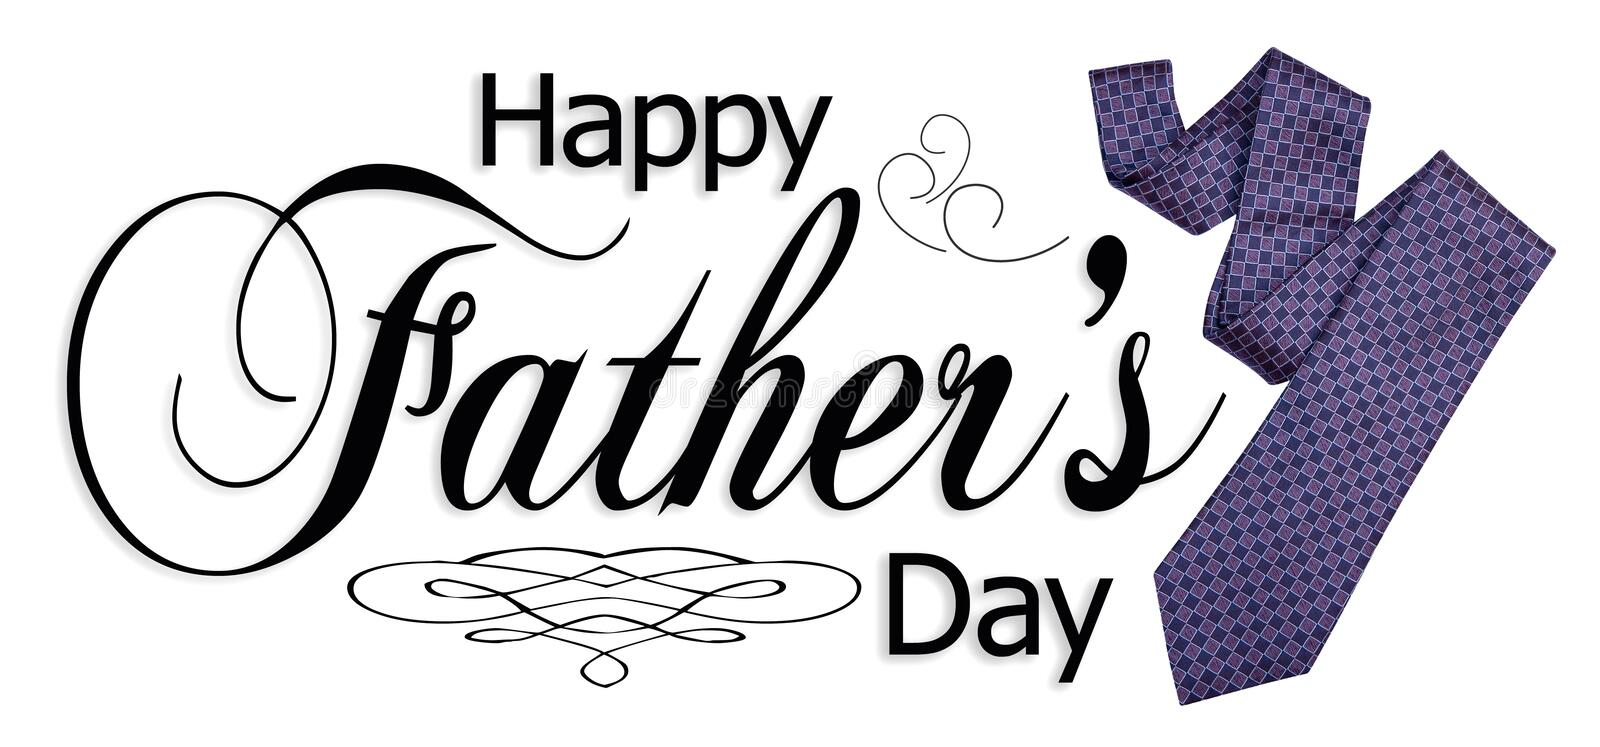 Happy Fathers Day Graphic stock images